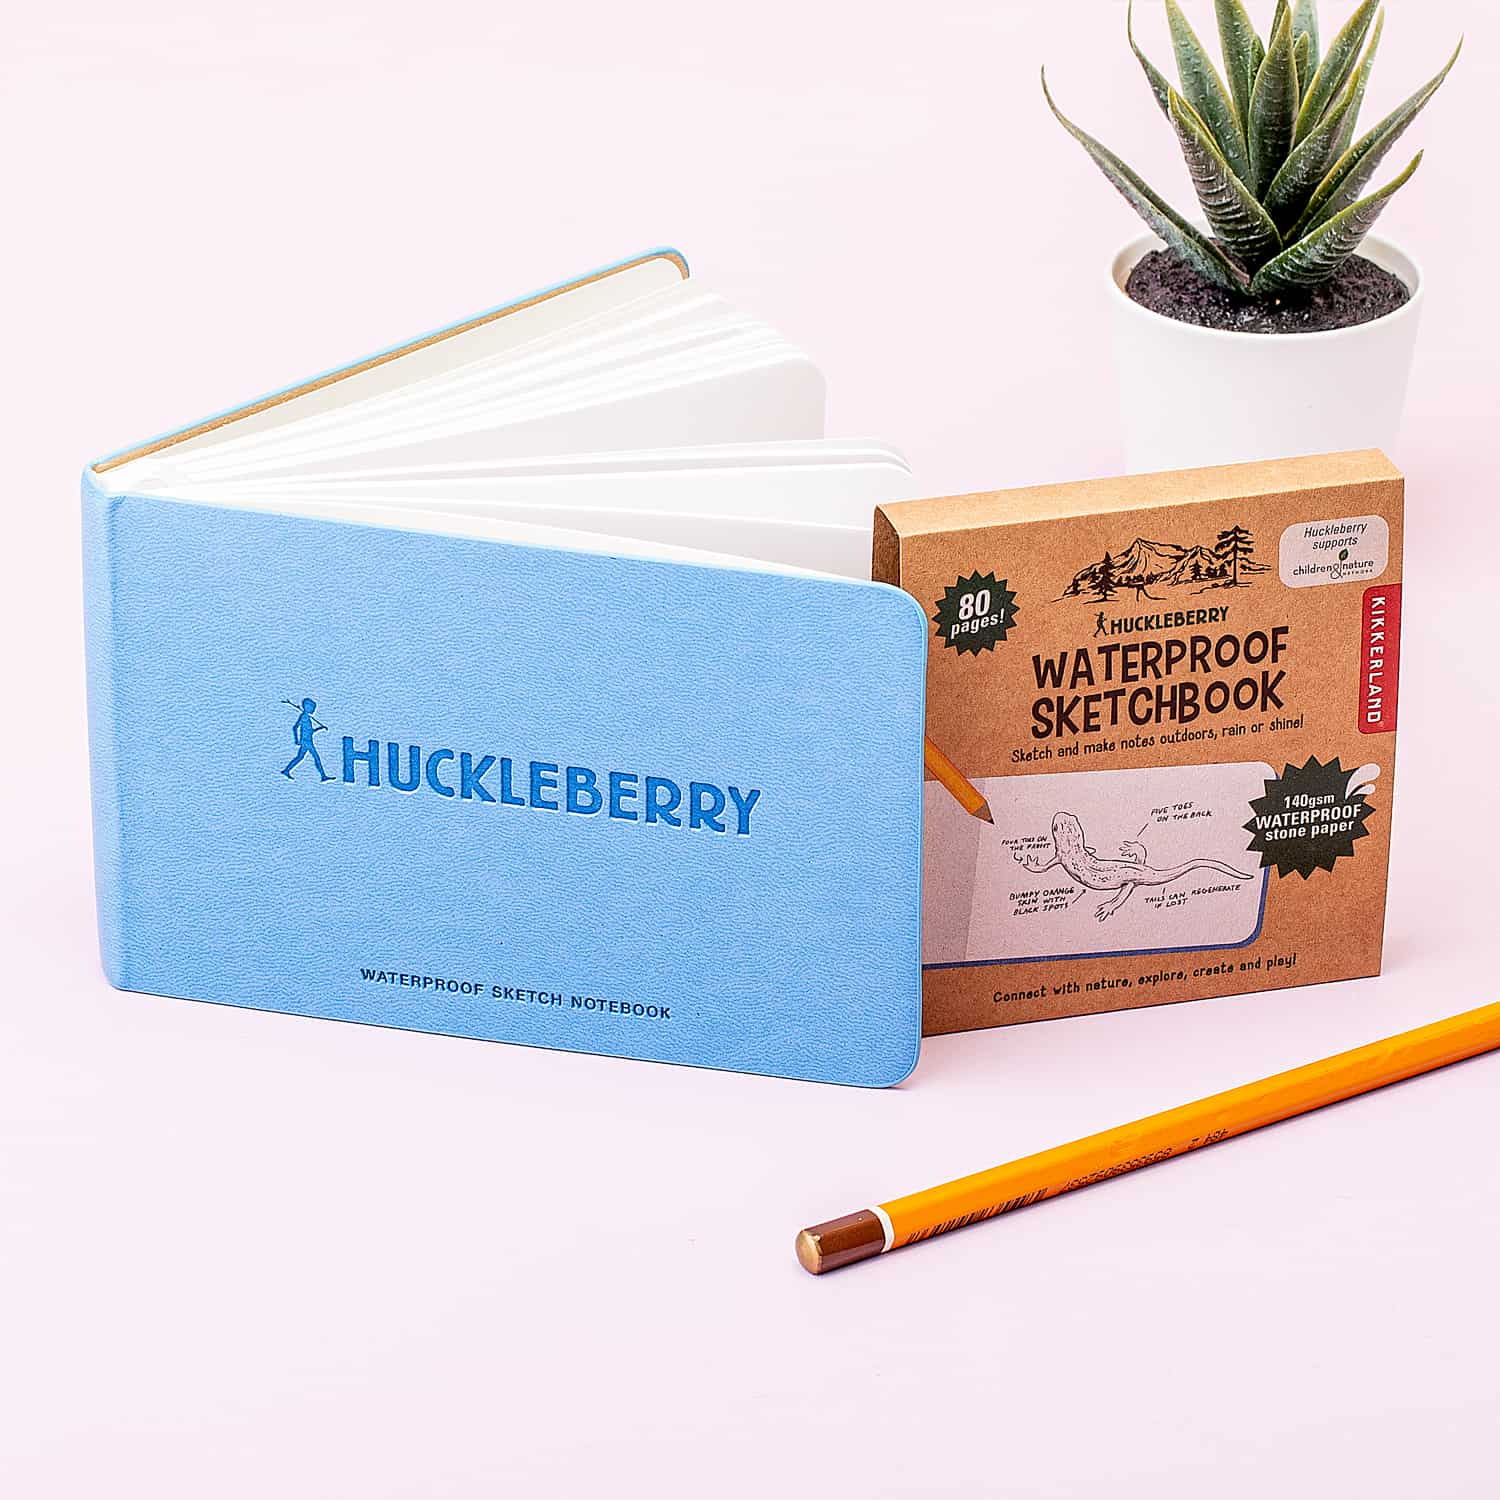 Huckleberry Waterproof Schetsboek